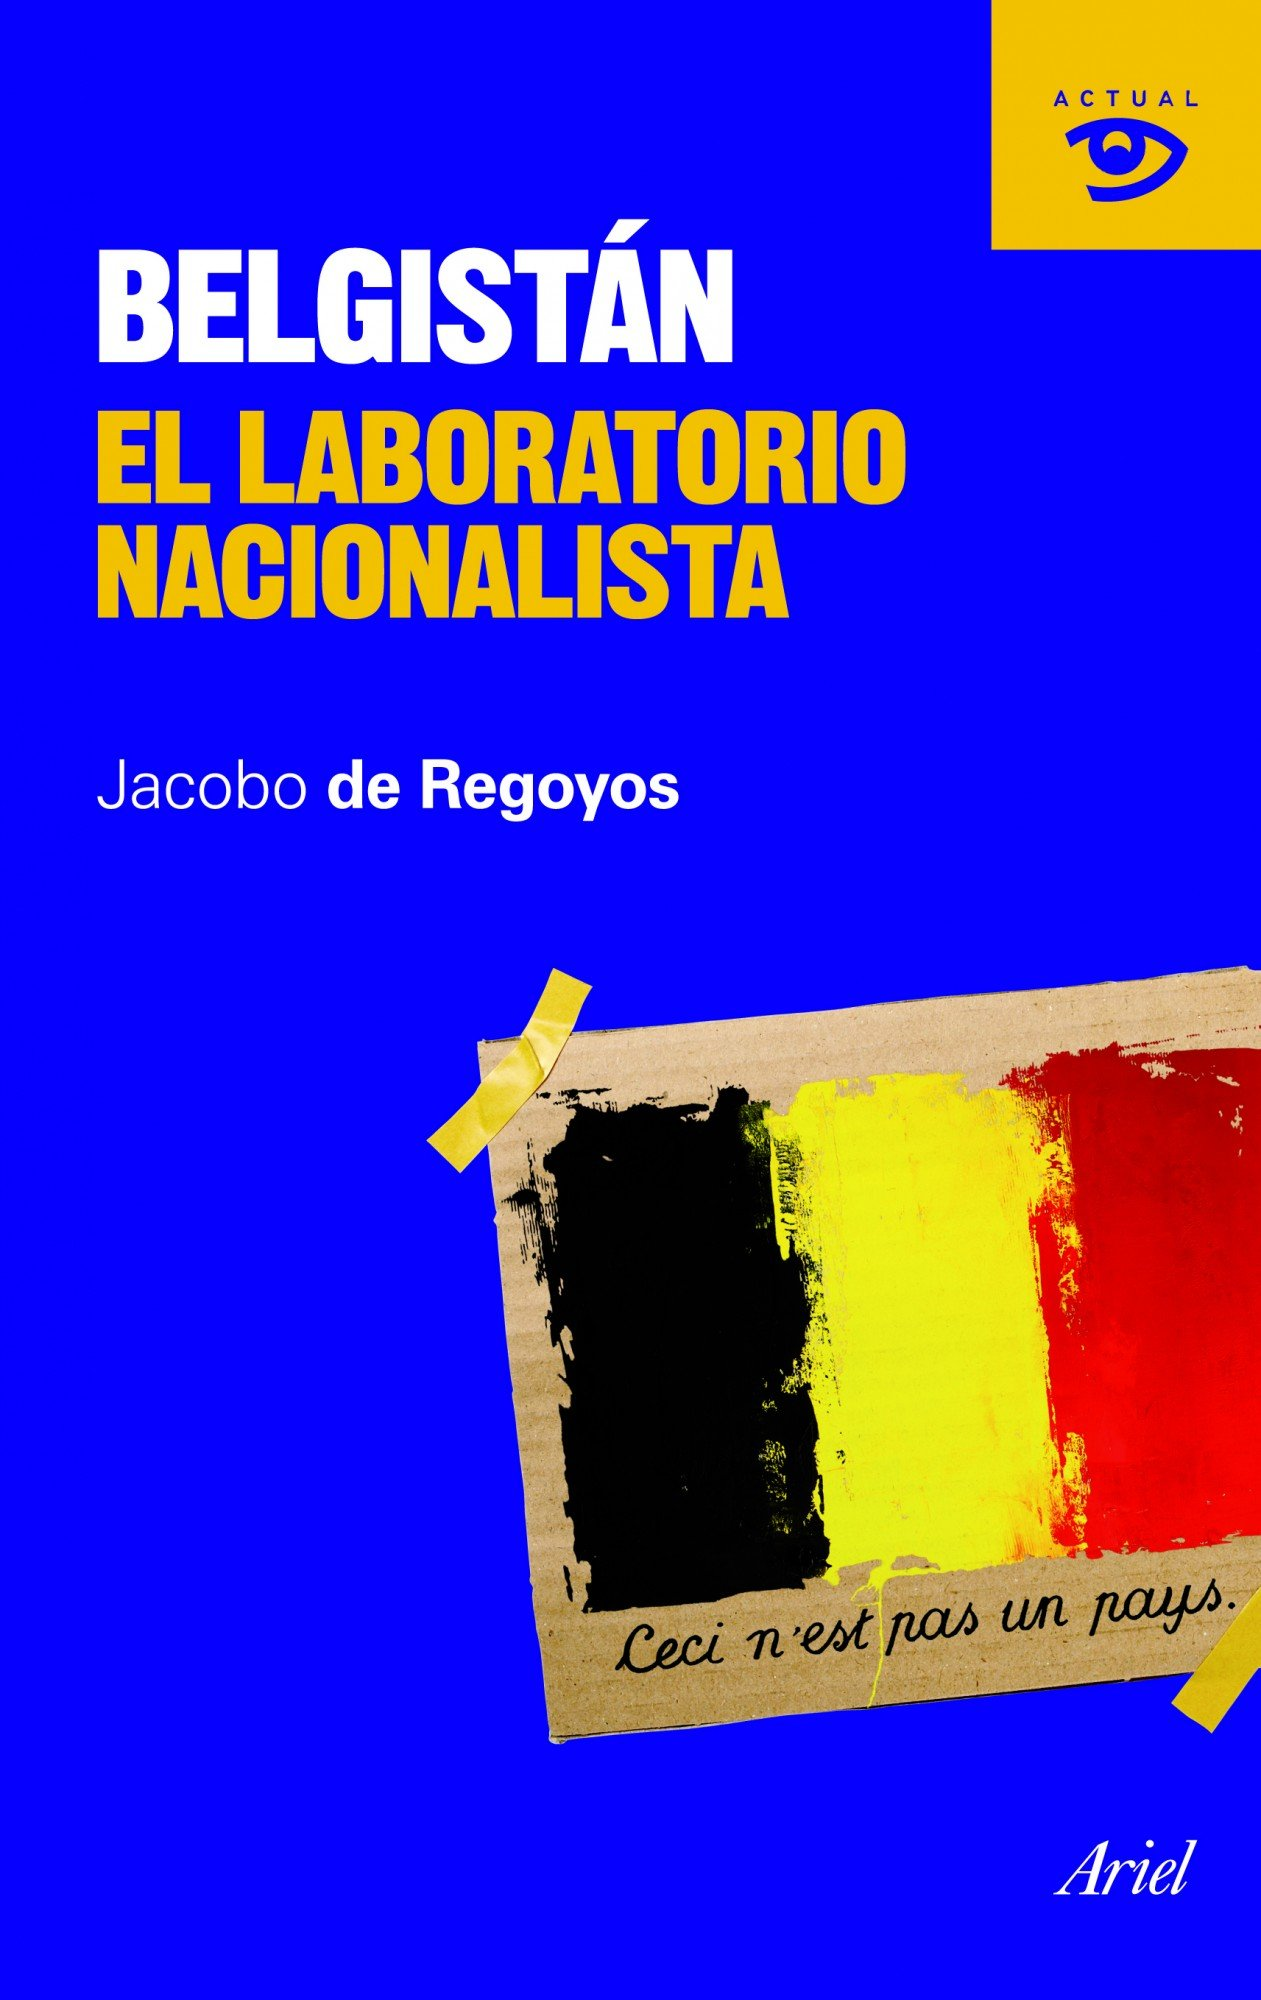 Download Belgistán: El Laboratorio Nacionalista (ACTUAL) 